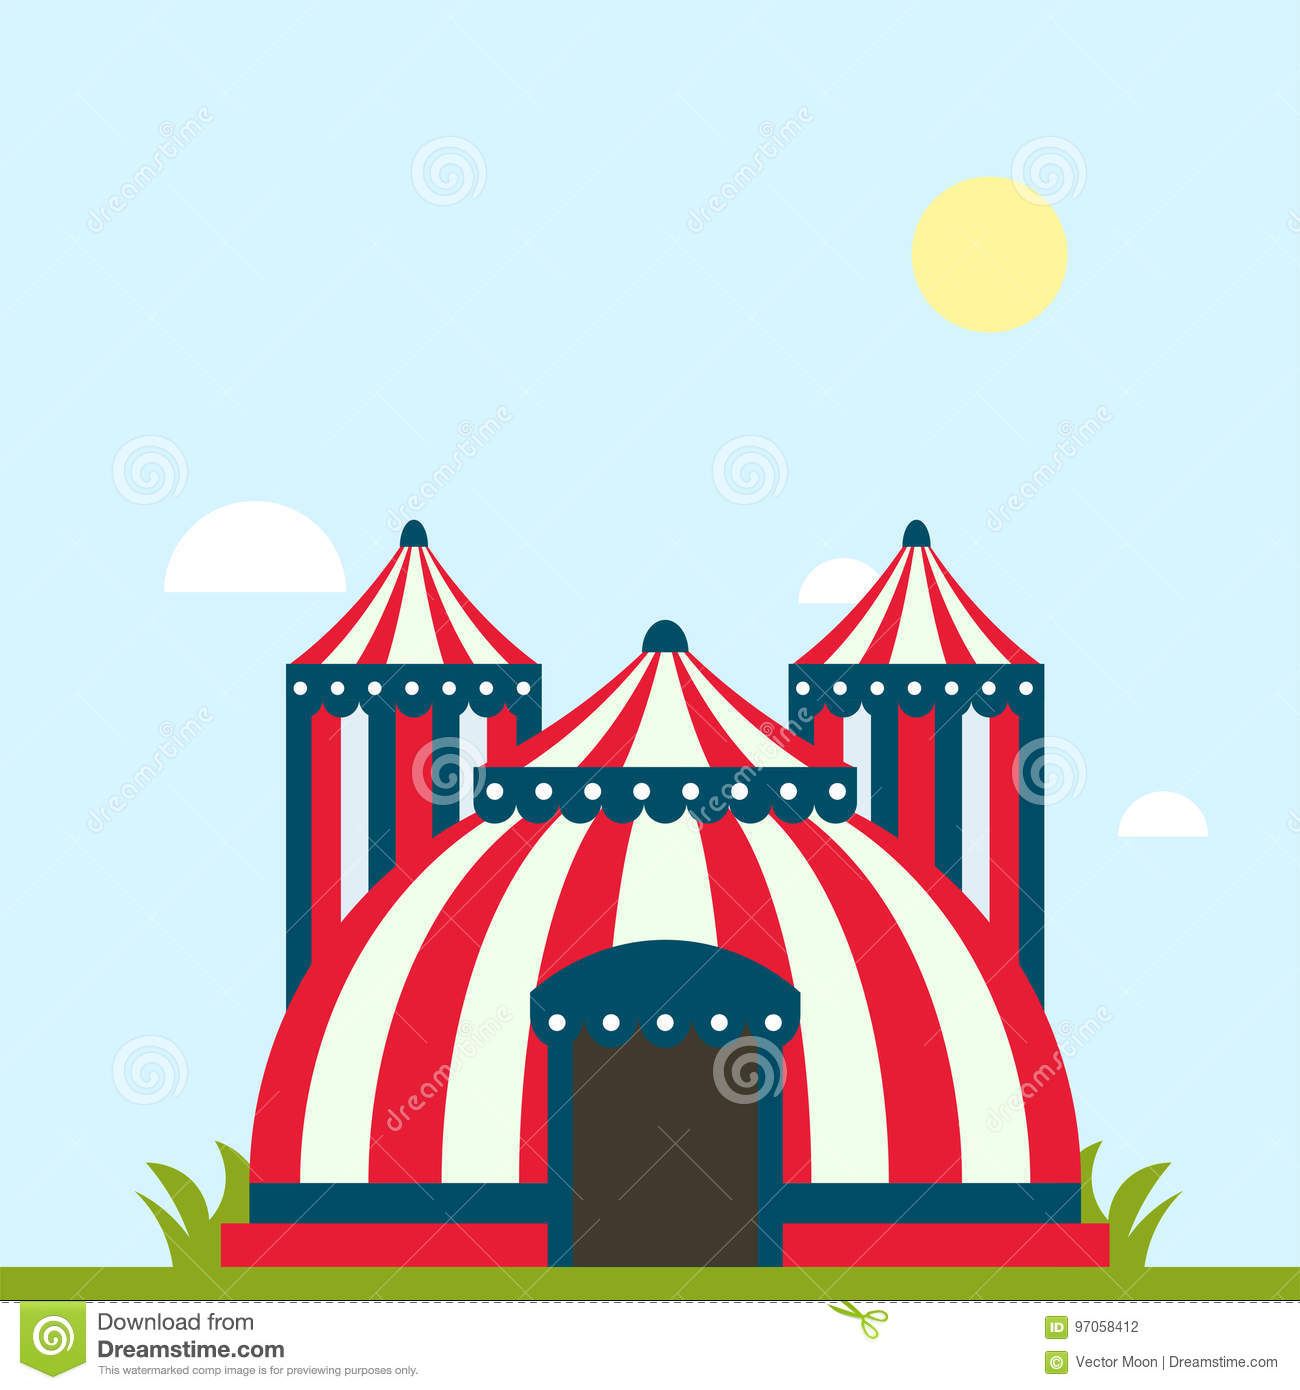 Circus show entertainment tent marquee marquee outdoor festival with stripes and flags isolated carnival signs  sc 1 st  Dreamstime.com & Circus Show Entertainment Tent Marquee Marquee Outdoor Festival With ...